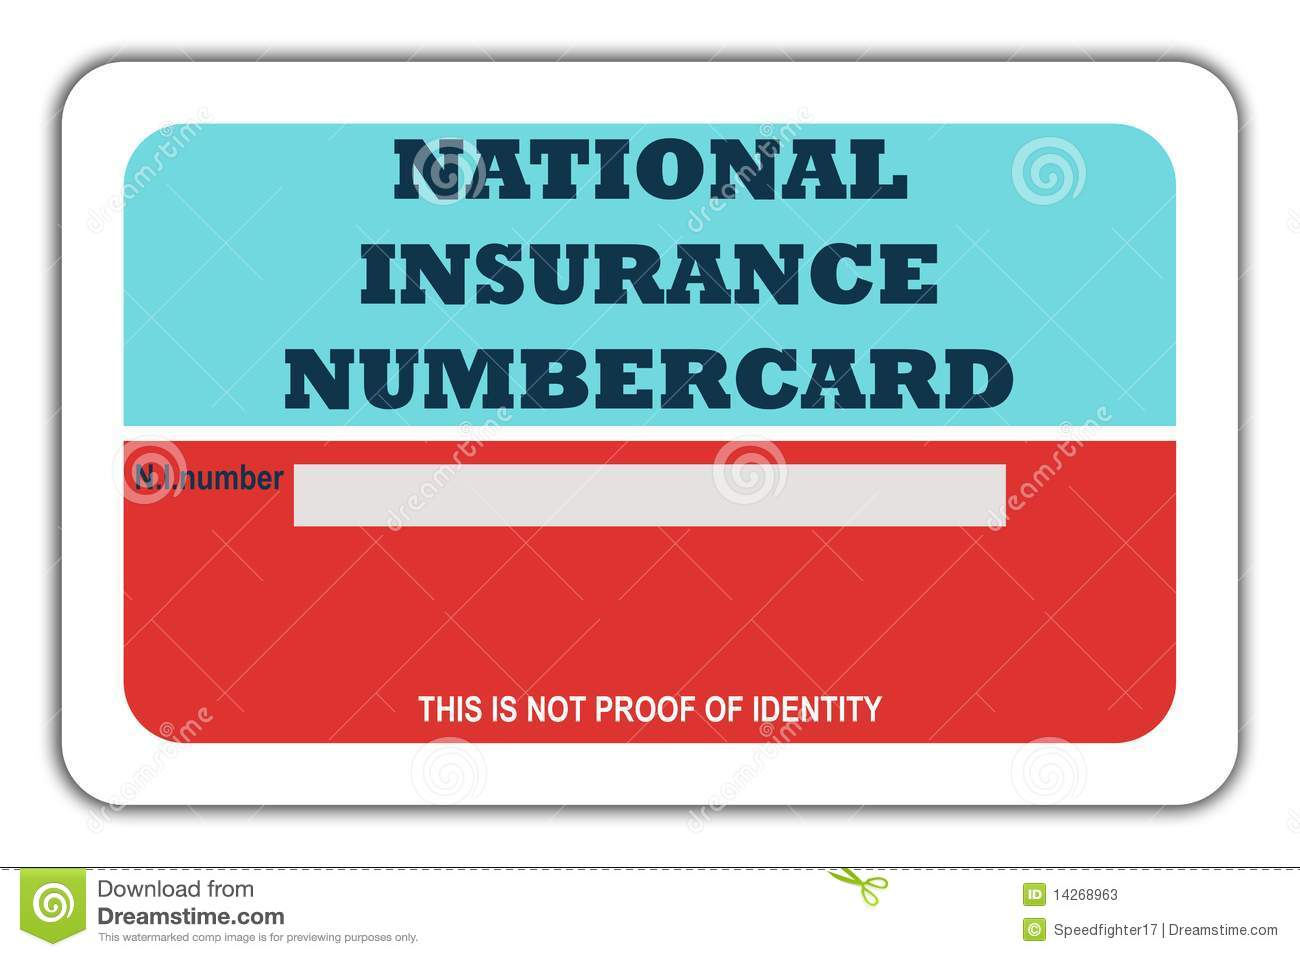 national insurance card template  National Insurance Numbercard Stock Illustration - Illustration of ...